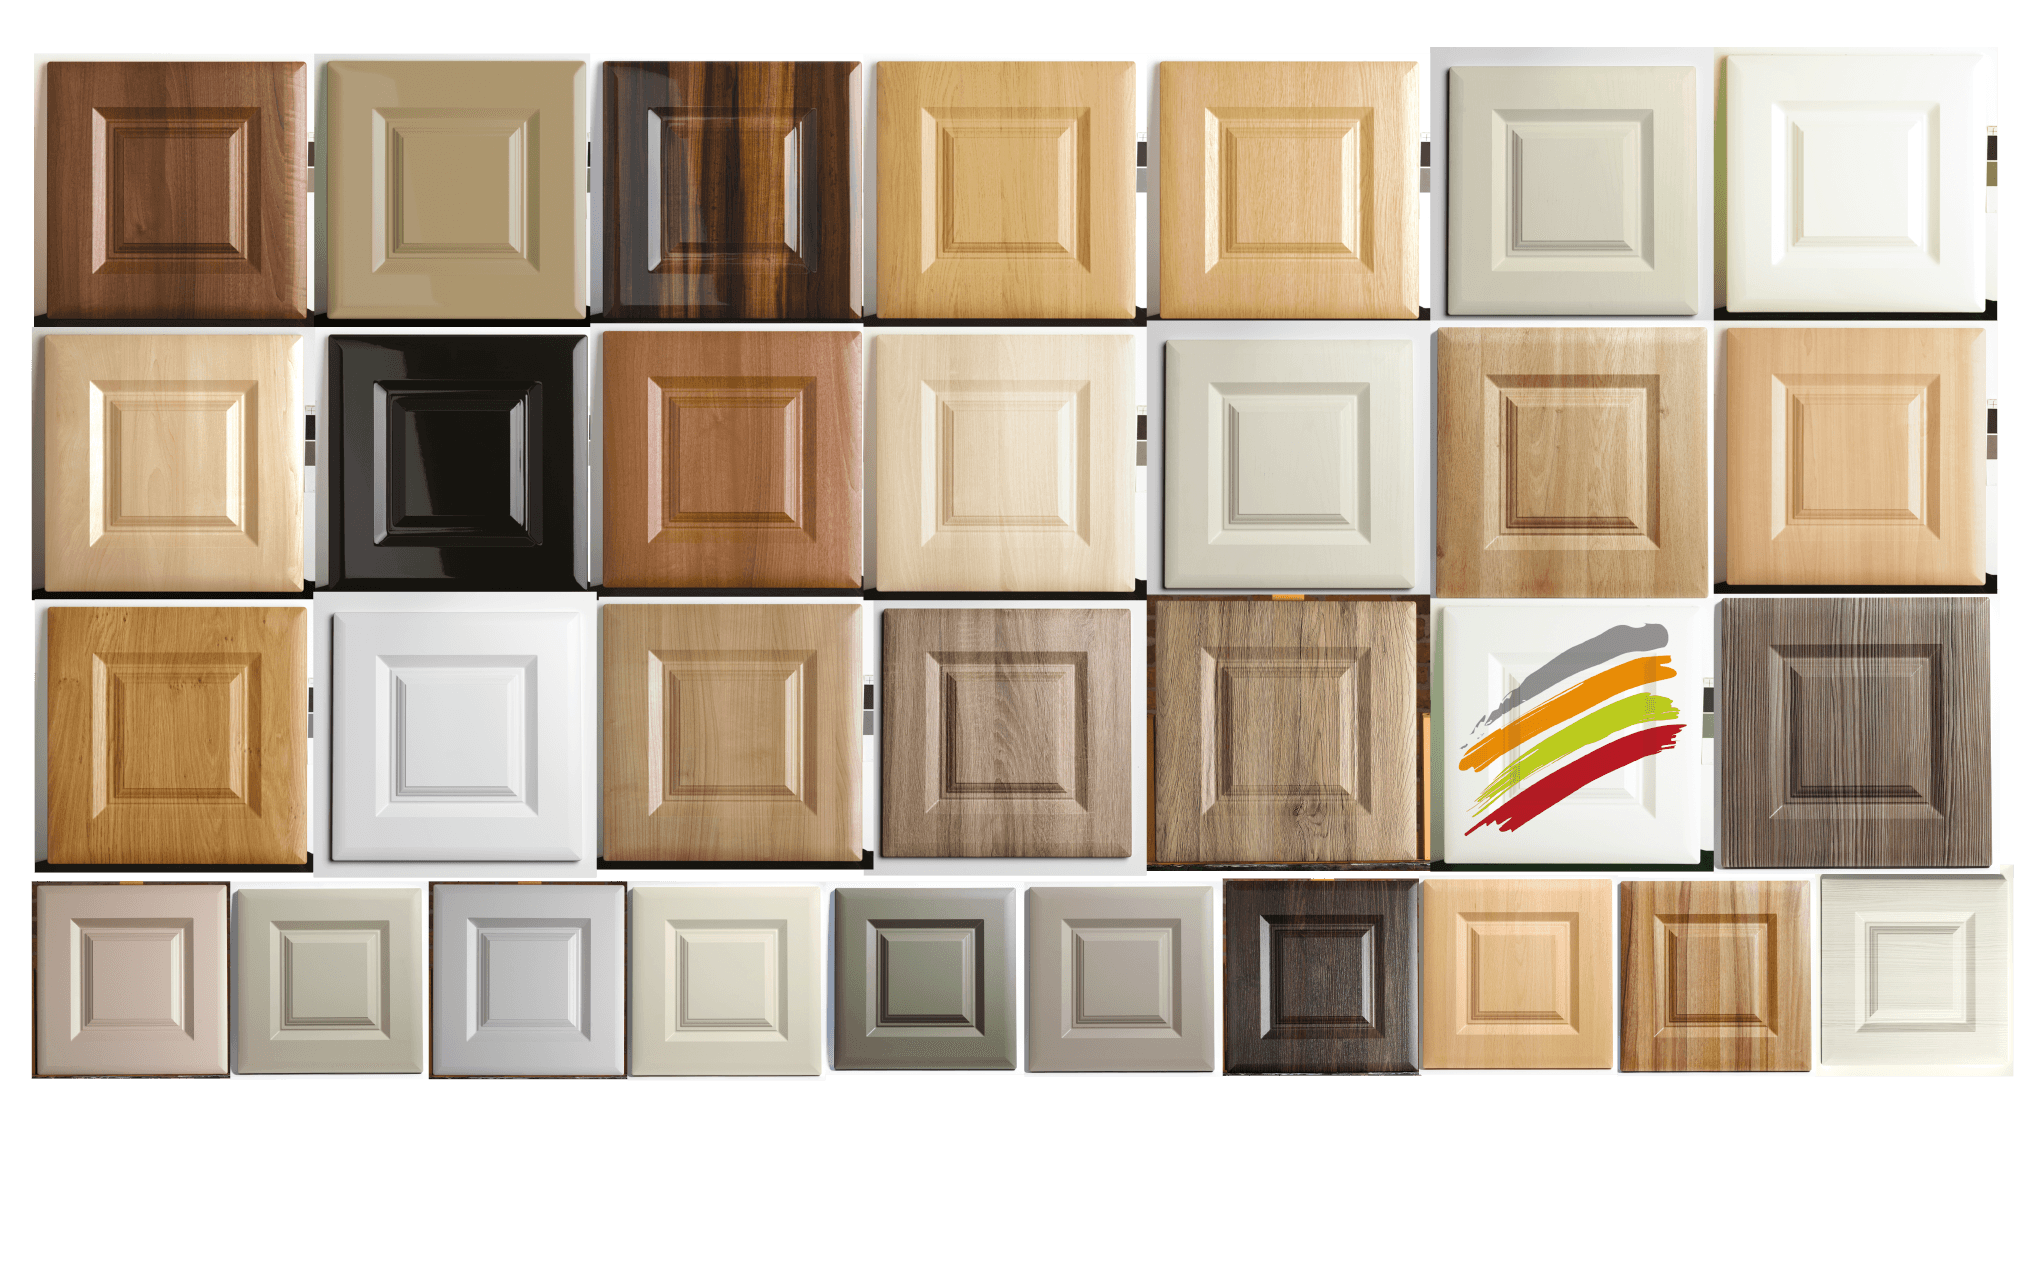 Ranges inner style bella. Door clipart bedroom door